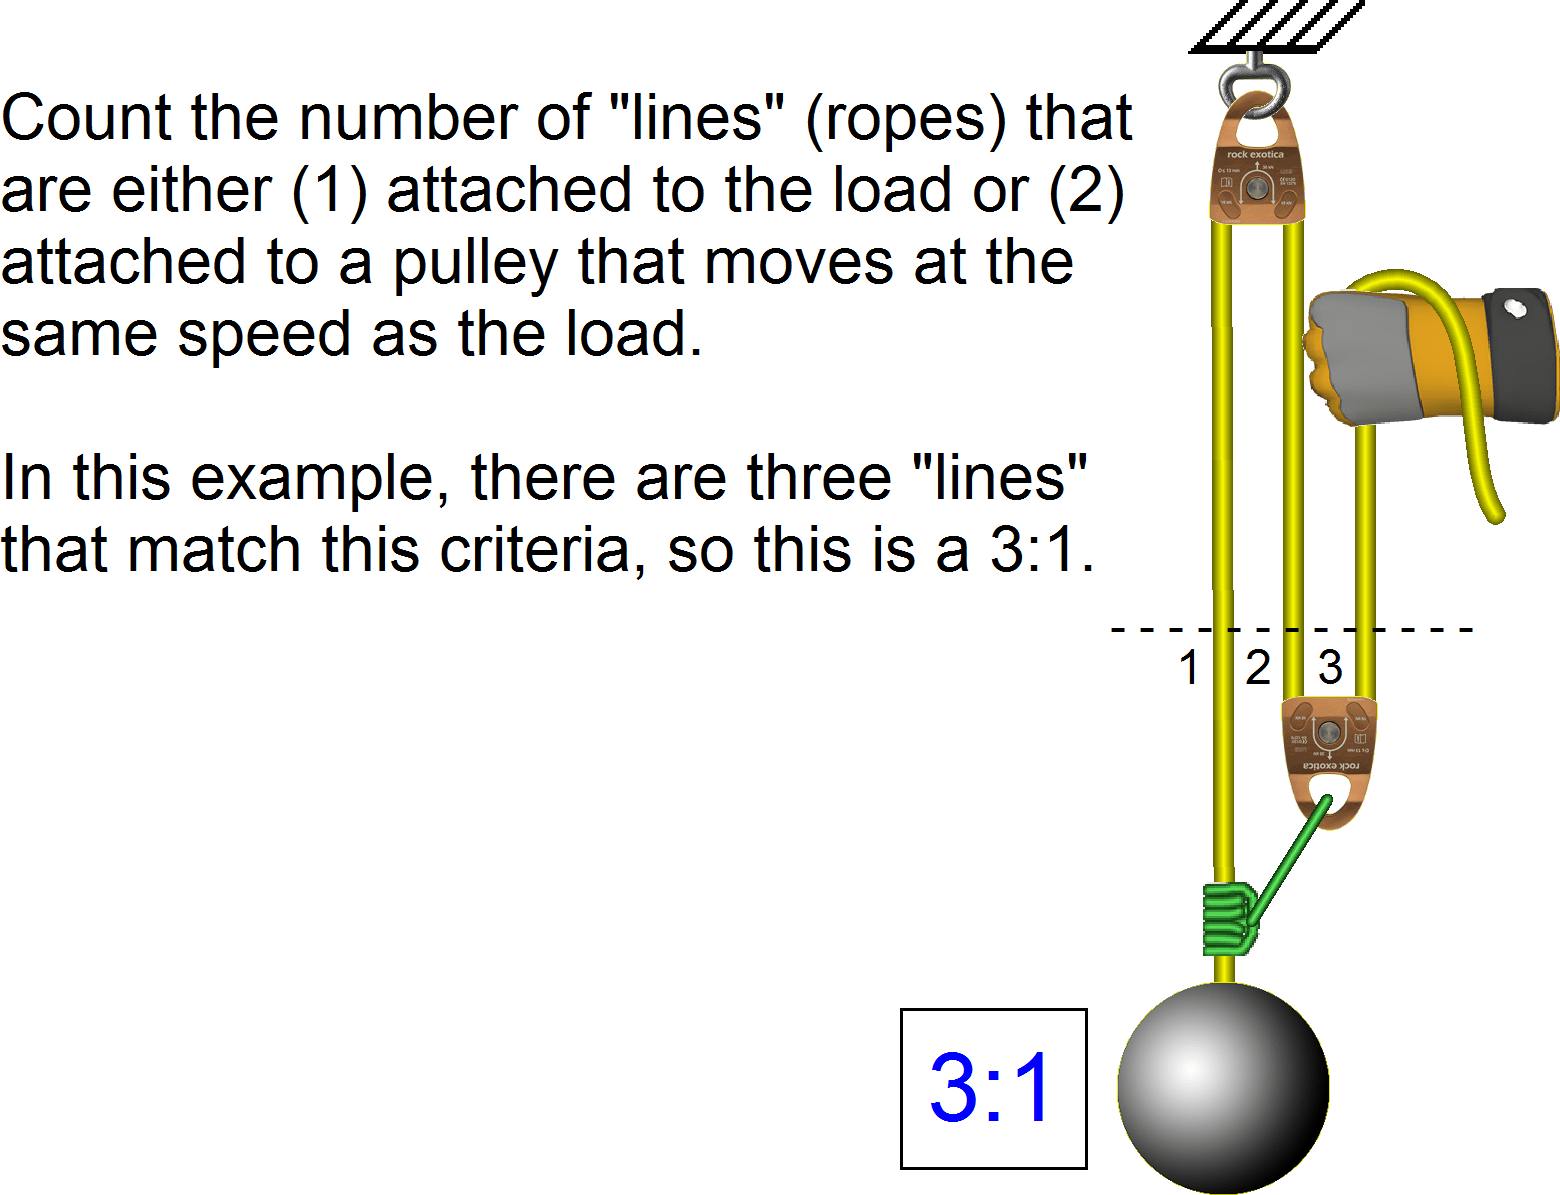 Rope Rescue Calculating Ma By Counting The Lines